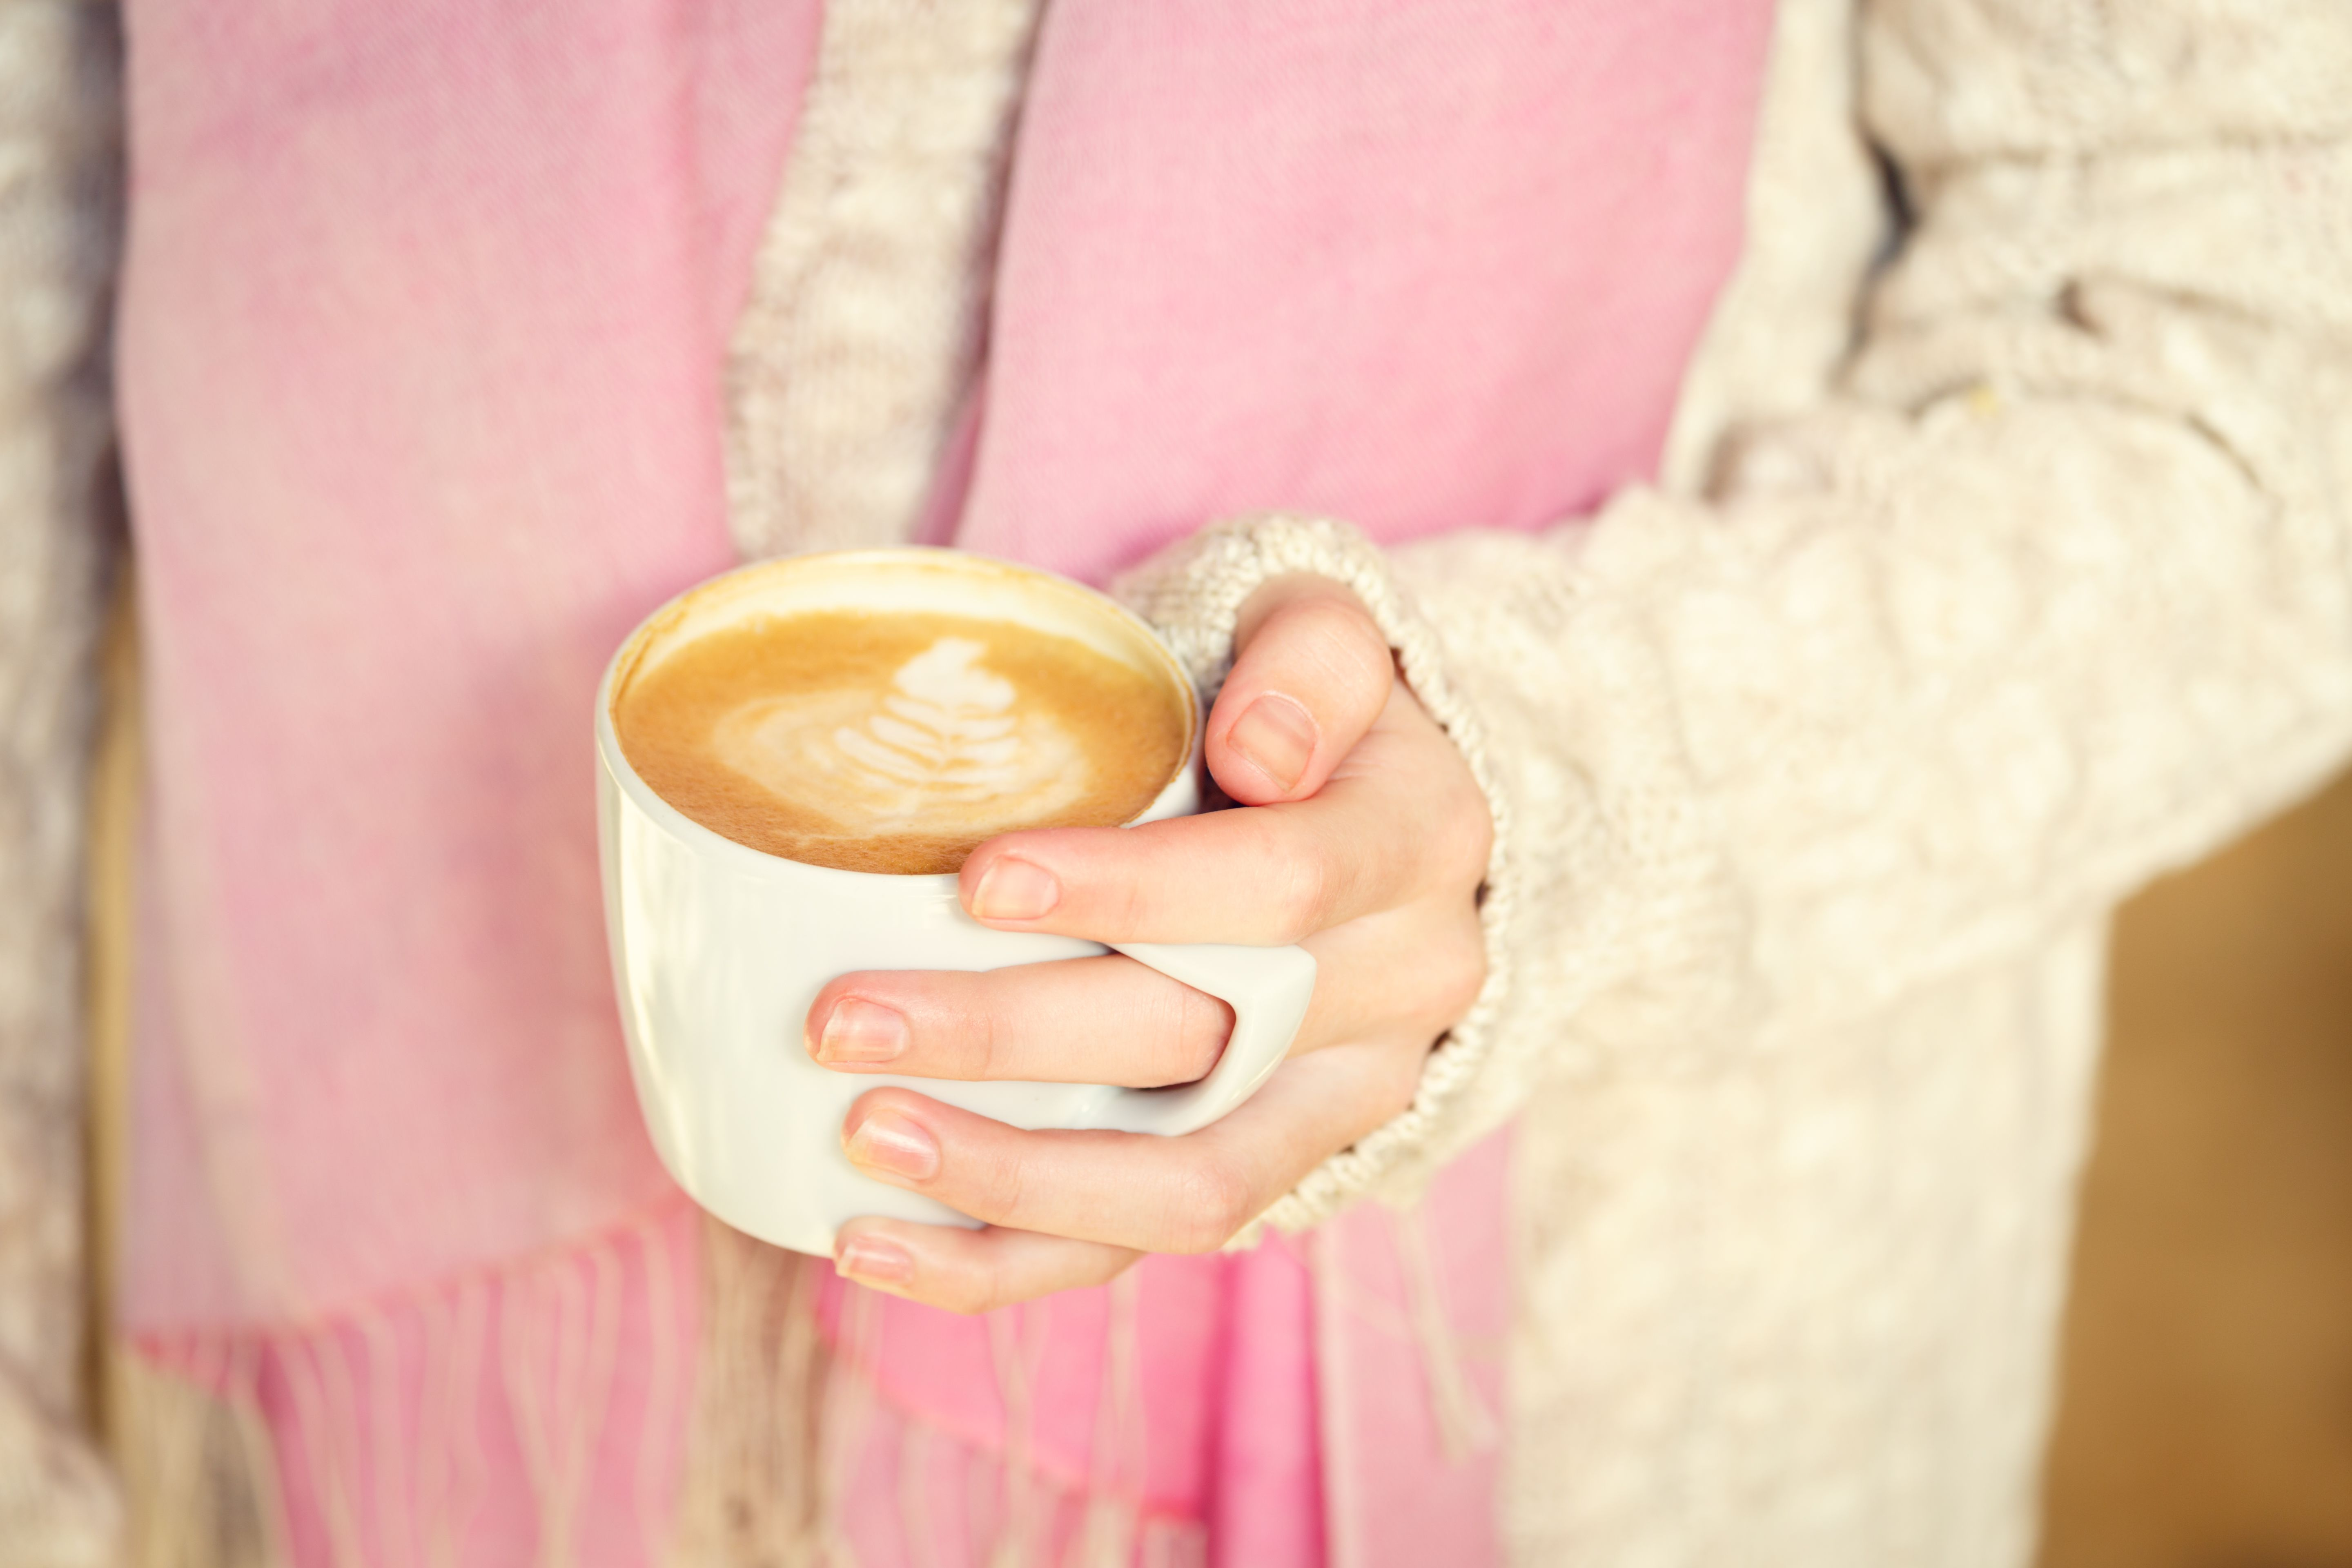 Girl holding a cup of coffee or hot chocolate or chai tea latte. Quiet hygge time concept